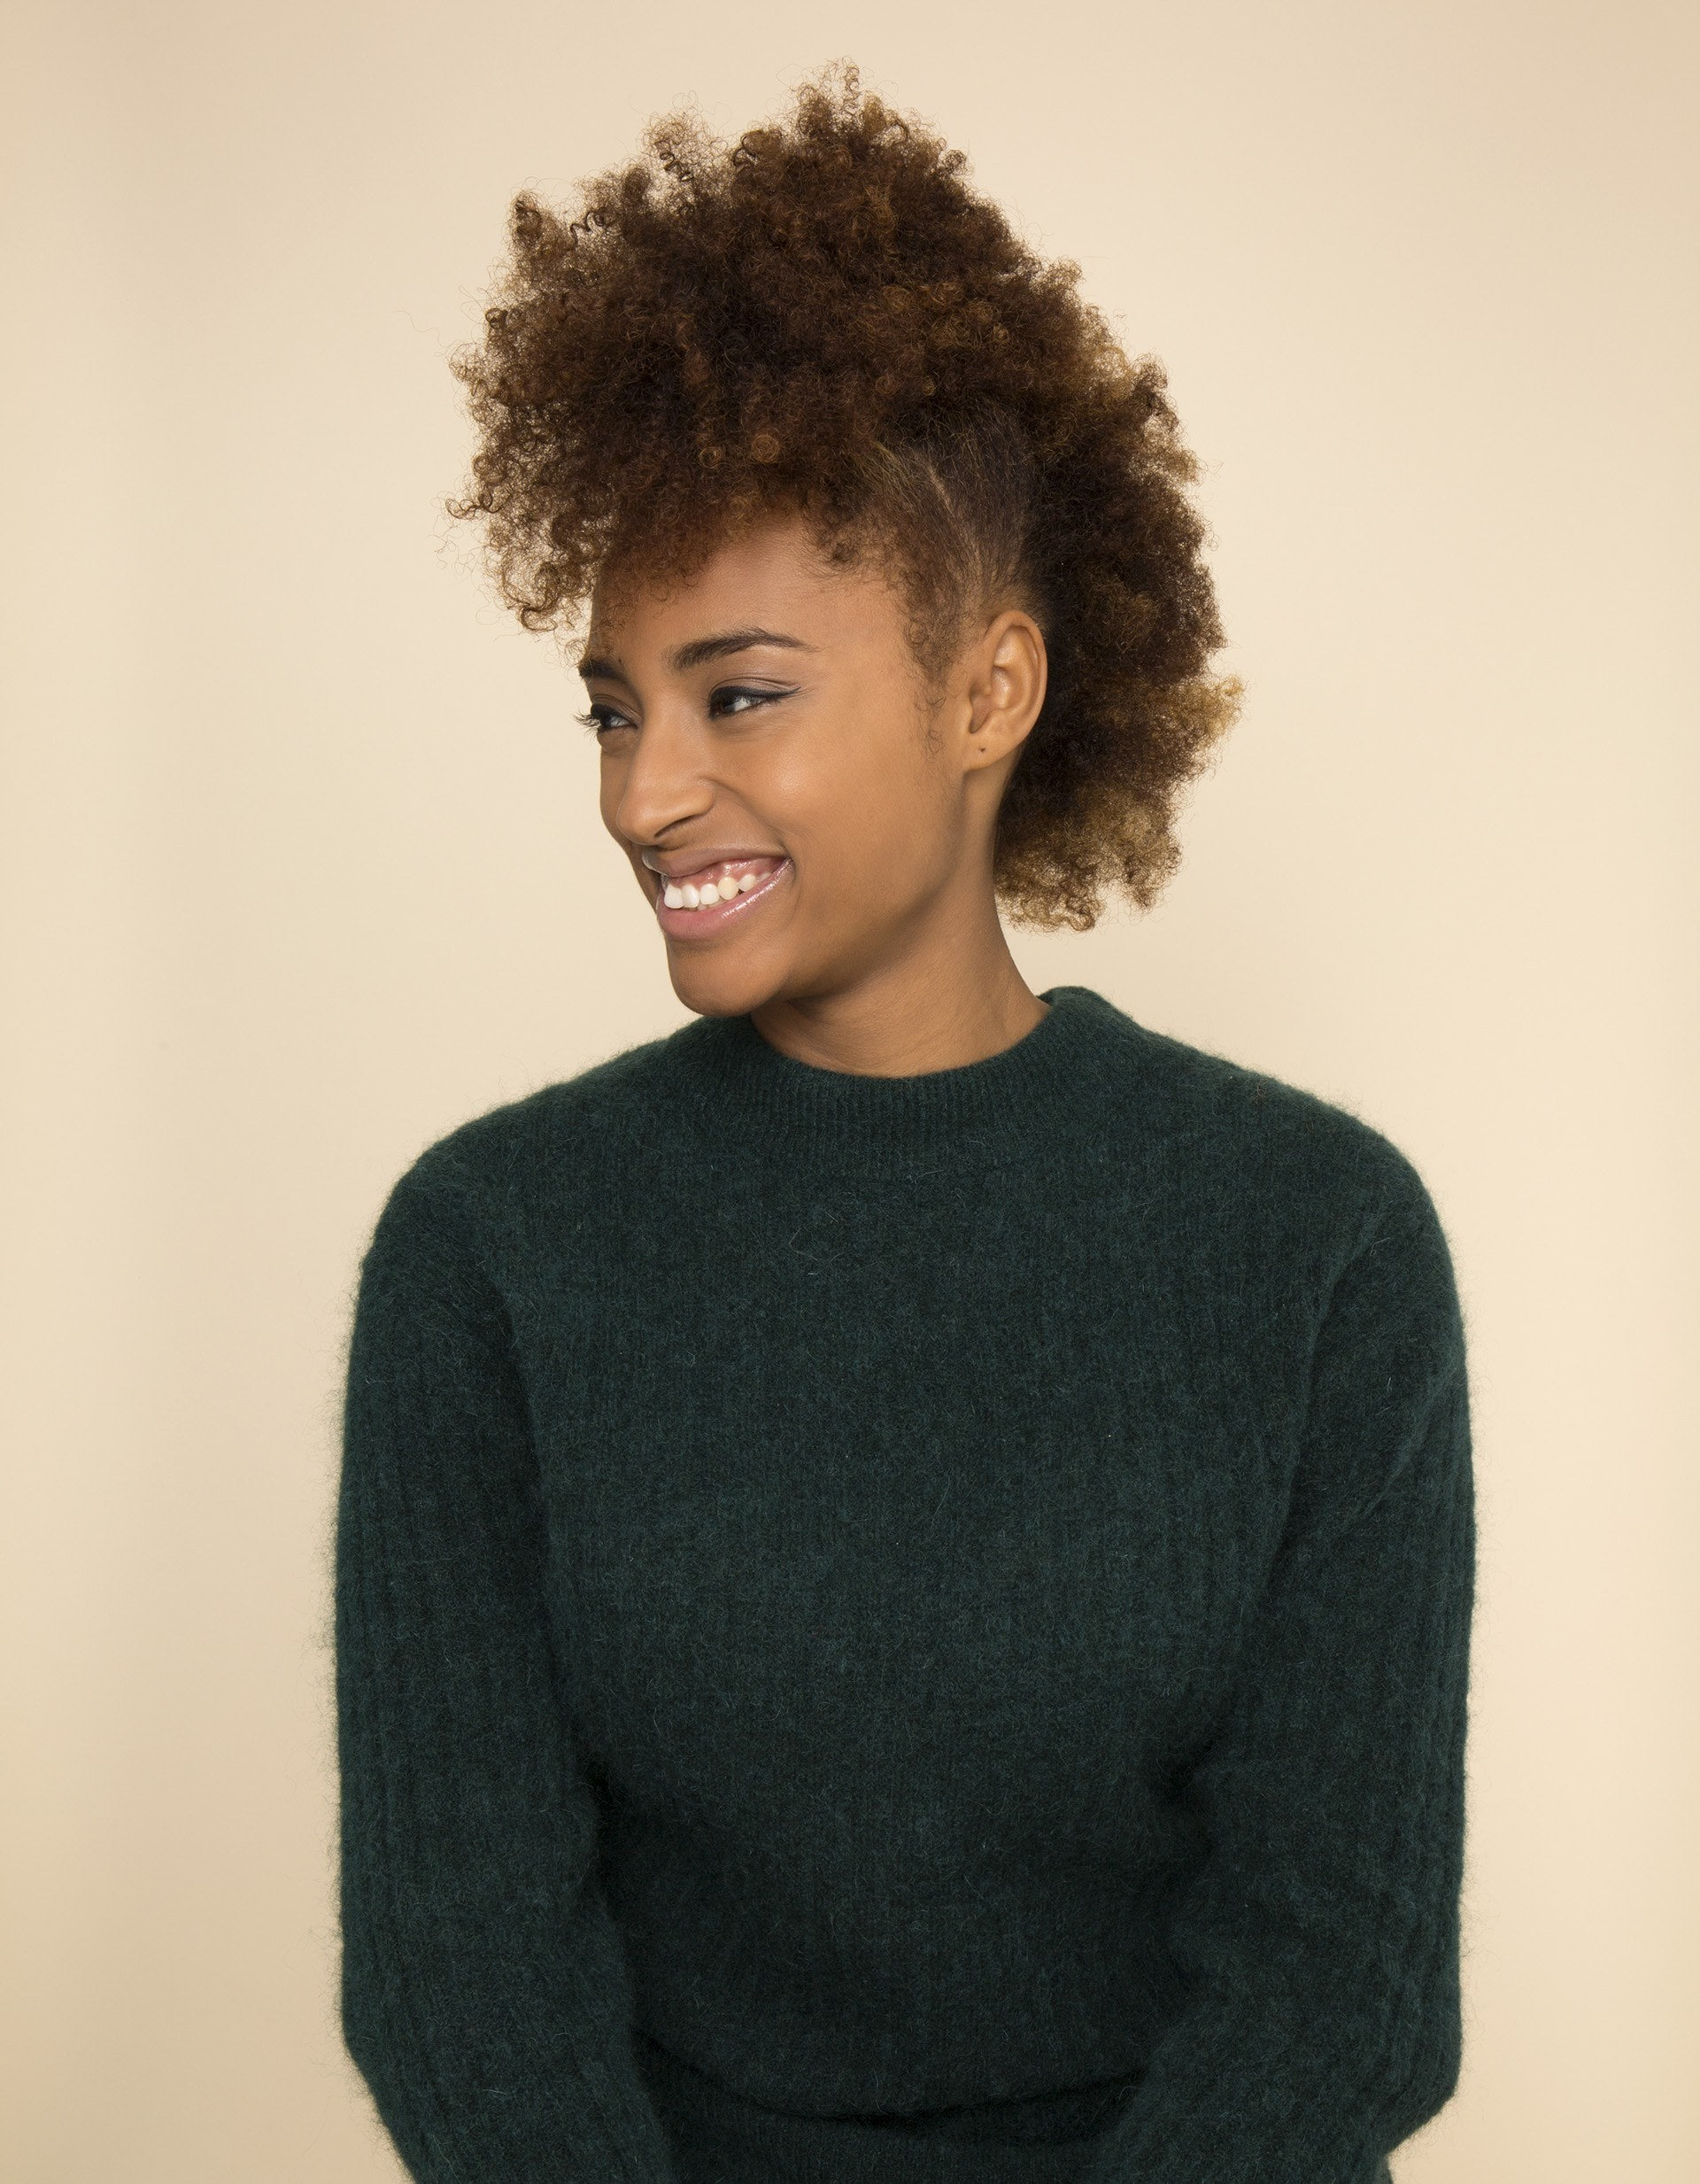 Low Manition Hairstyles For Short Natural Hair 7 Of Our